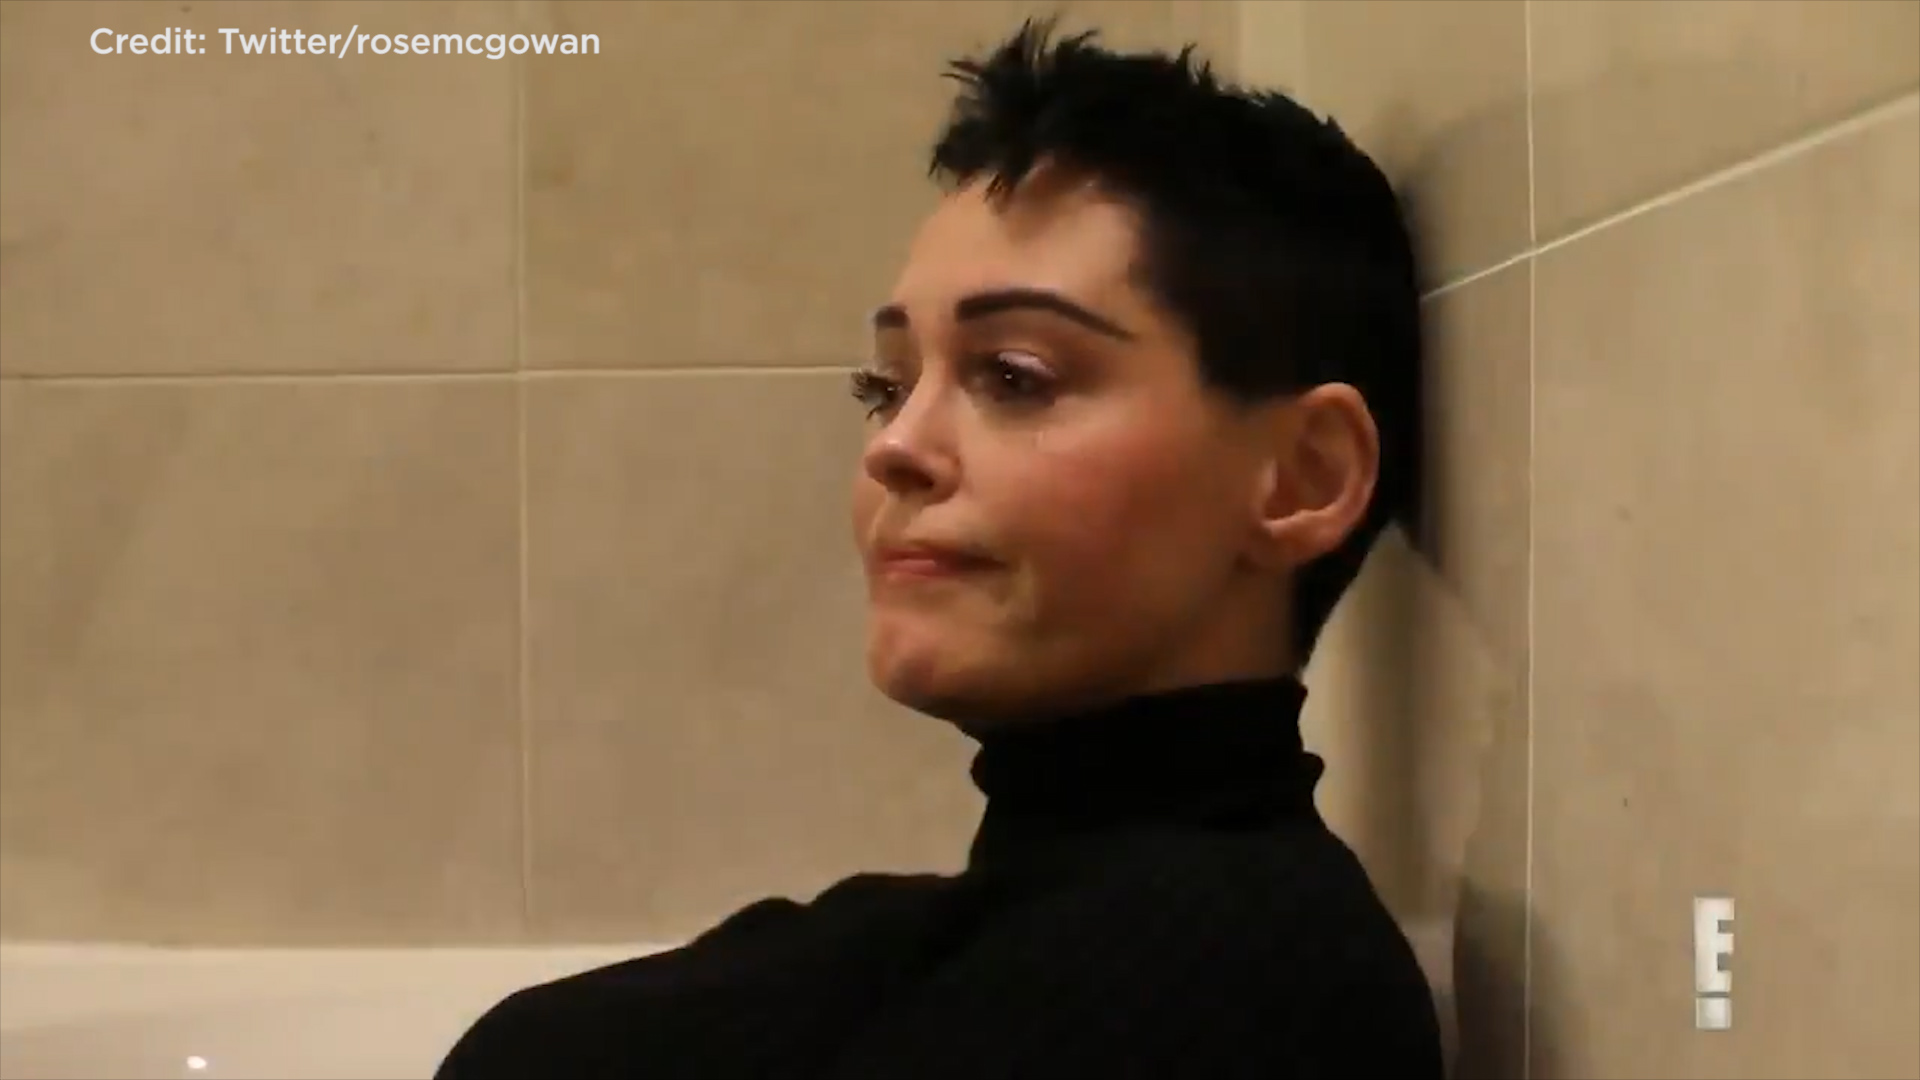 Rose McGowan Does Not Believe The System Can Change From Within